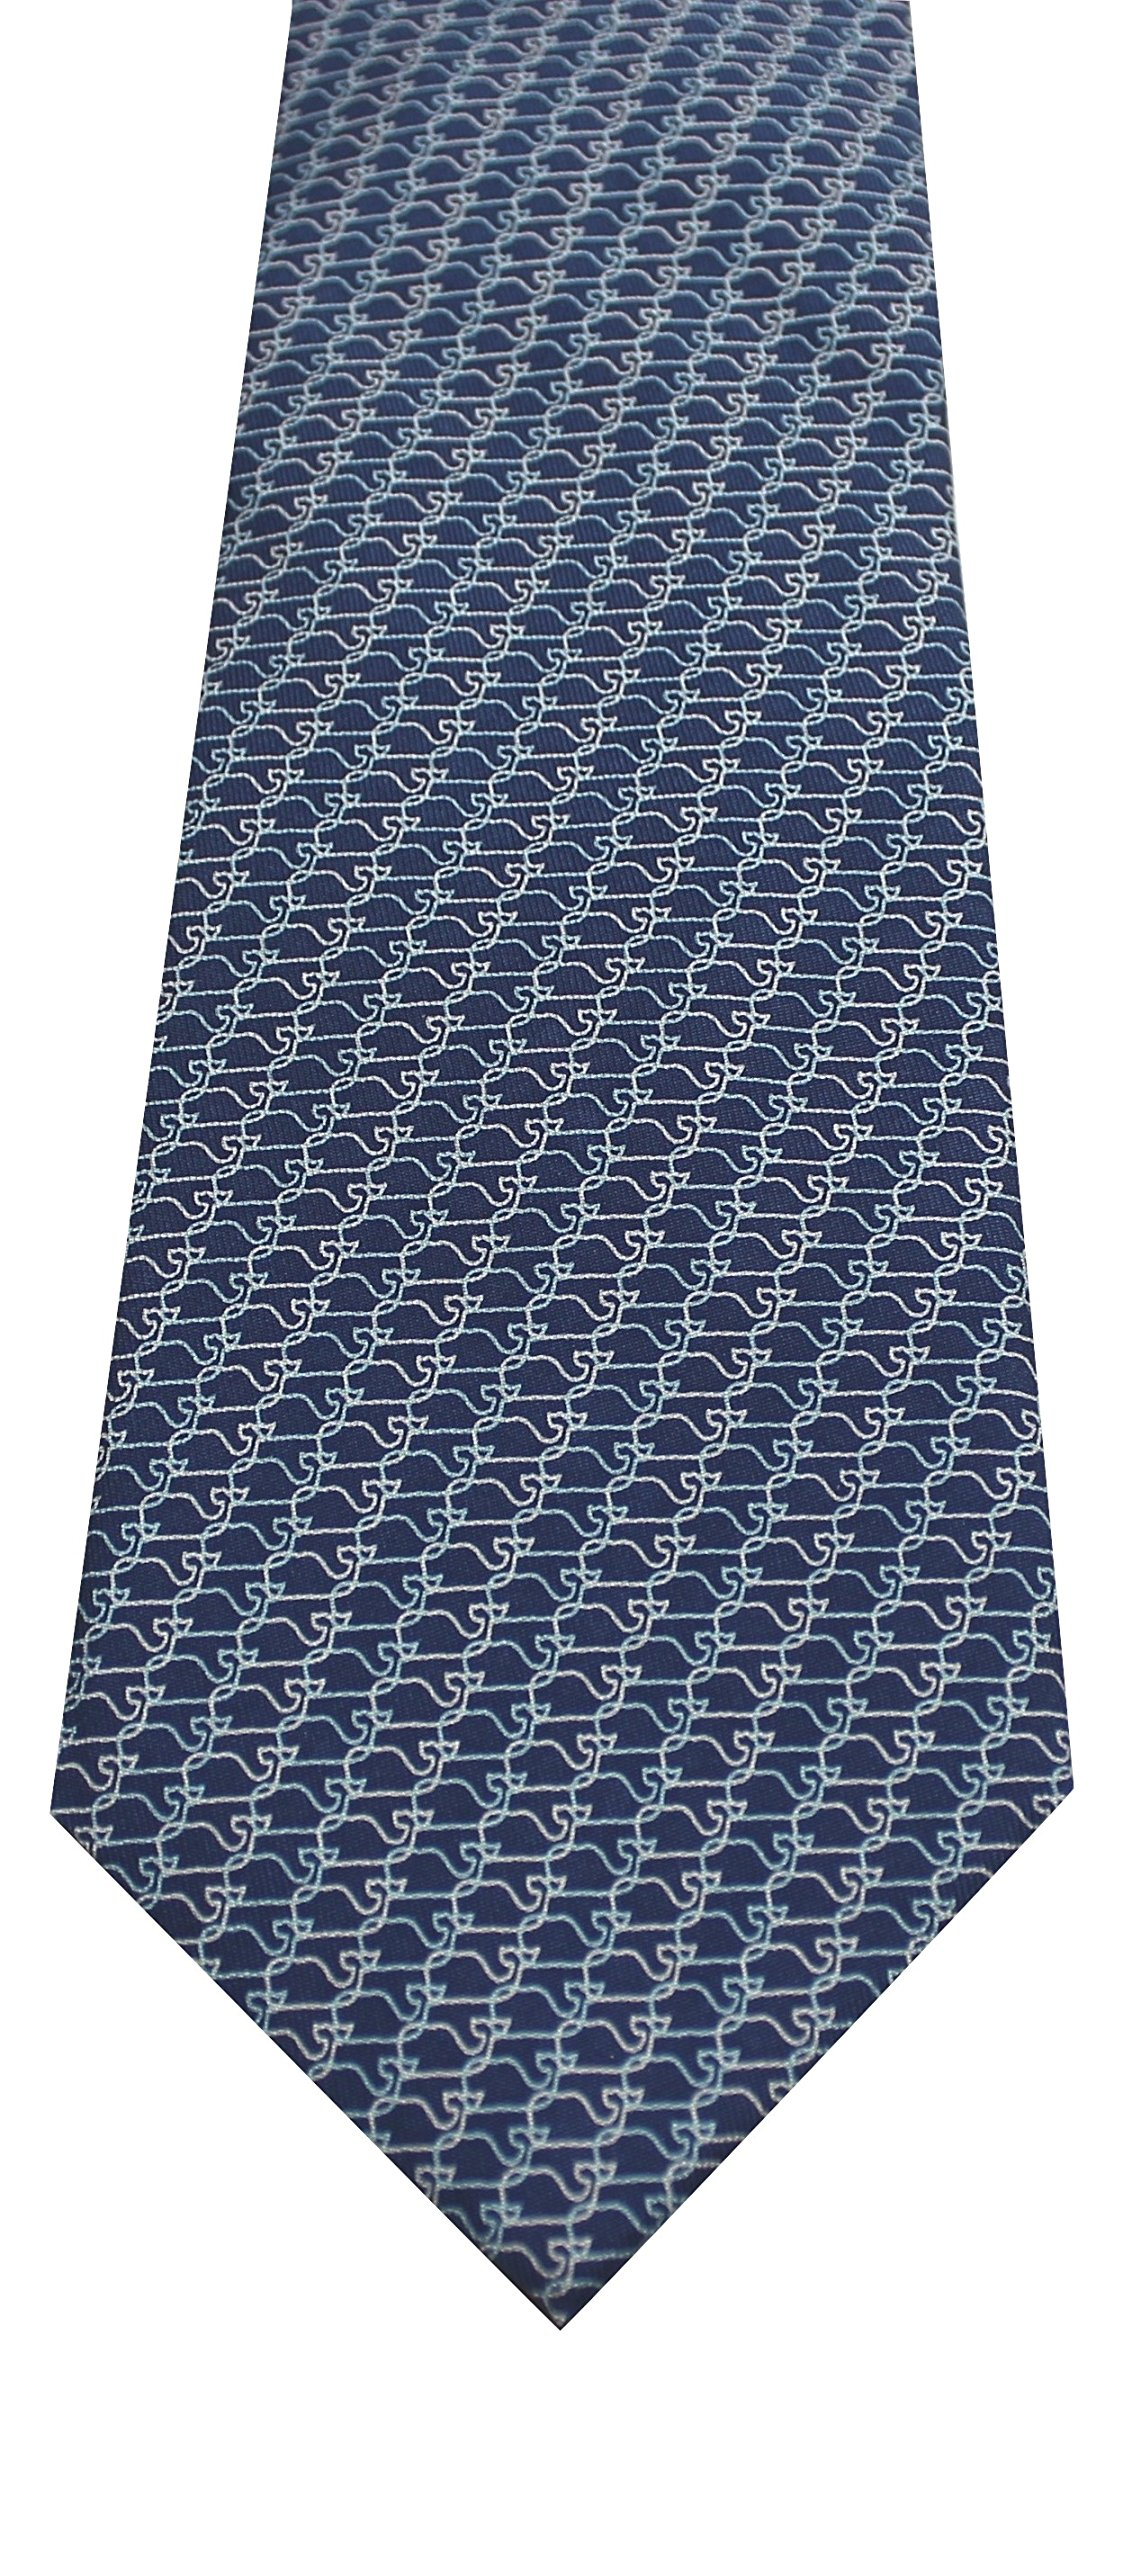 Vineyard Vines Men's Whale Links Silk Tie. (Navy)